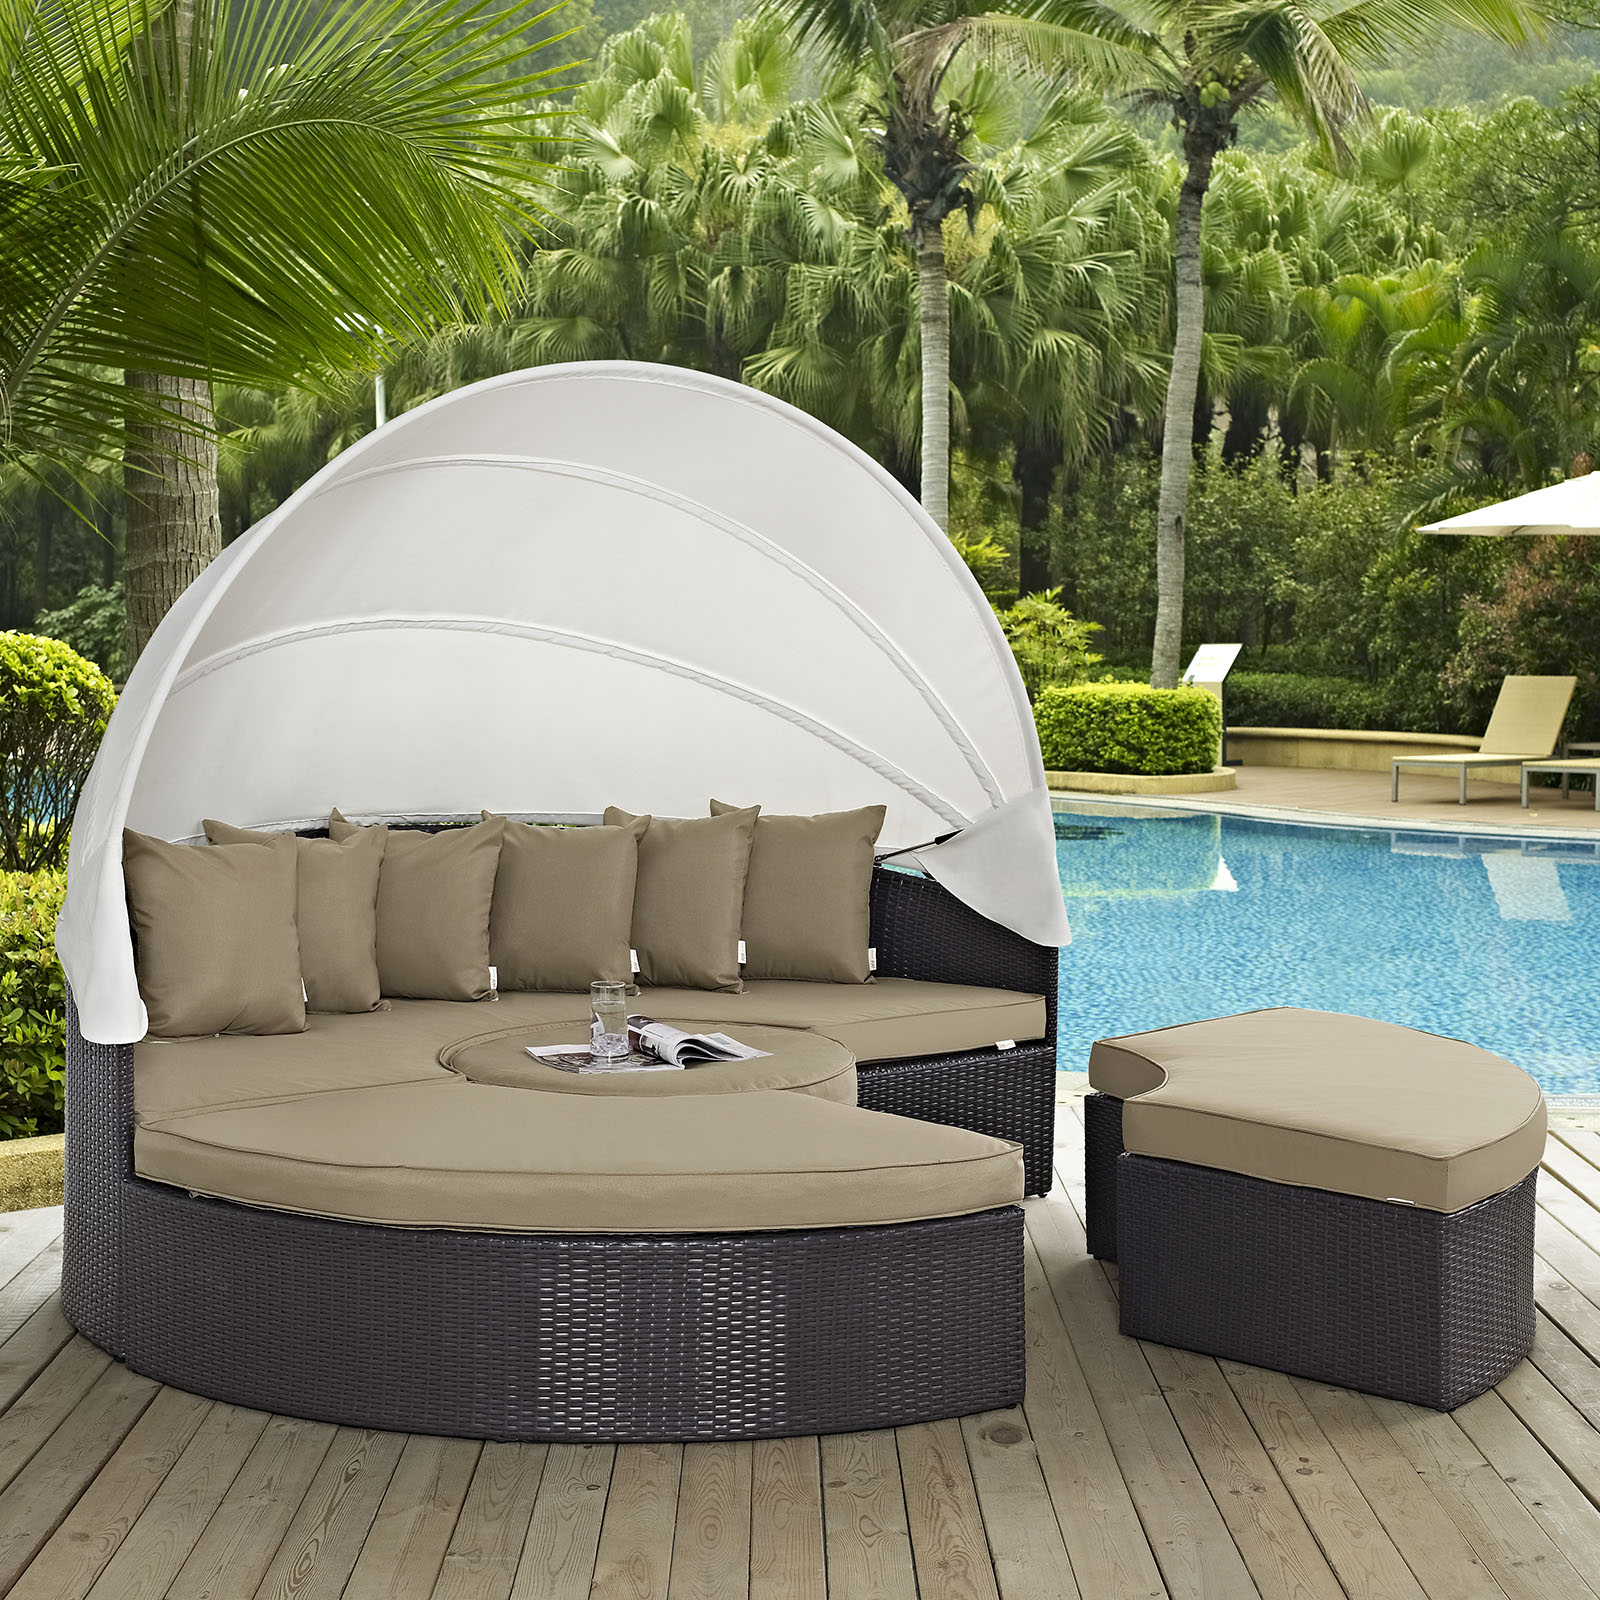 Modway Convene 5 Piece Canopy Outdoor Patio Daybed, Multiple Colors